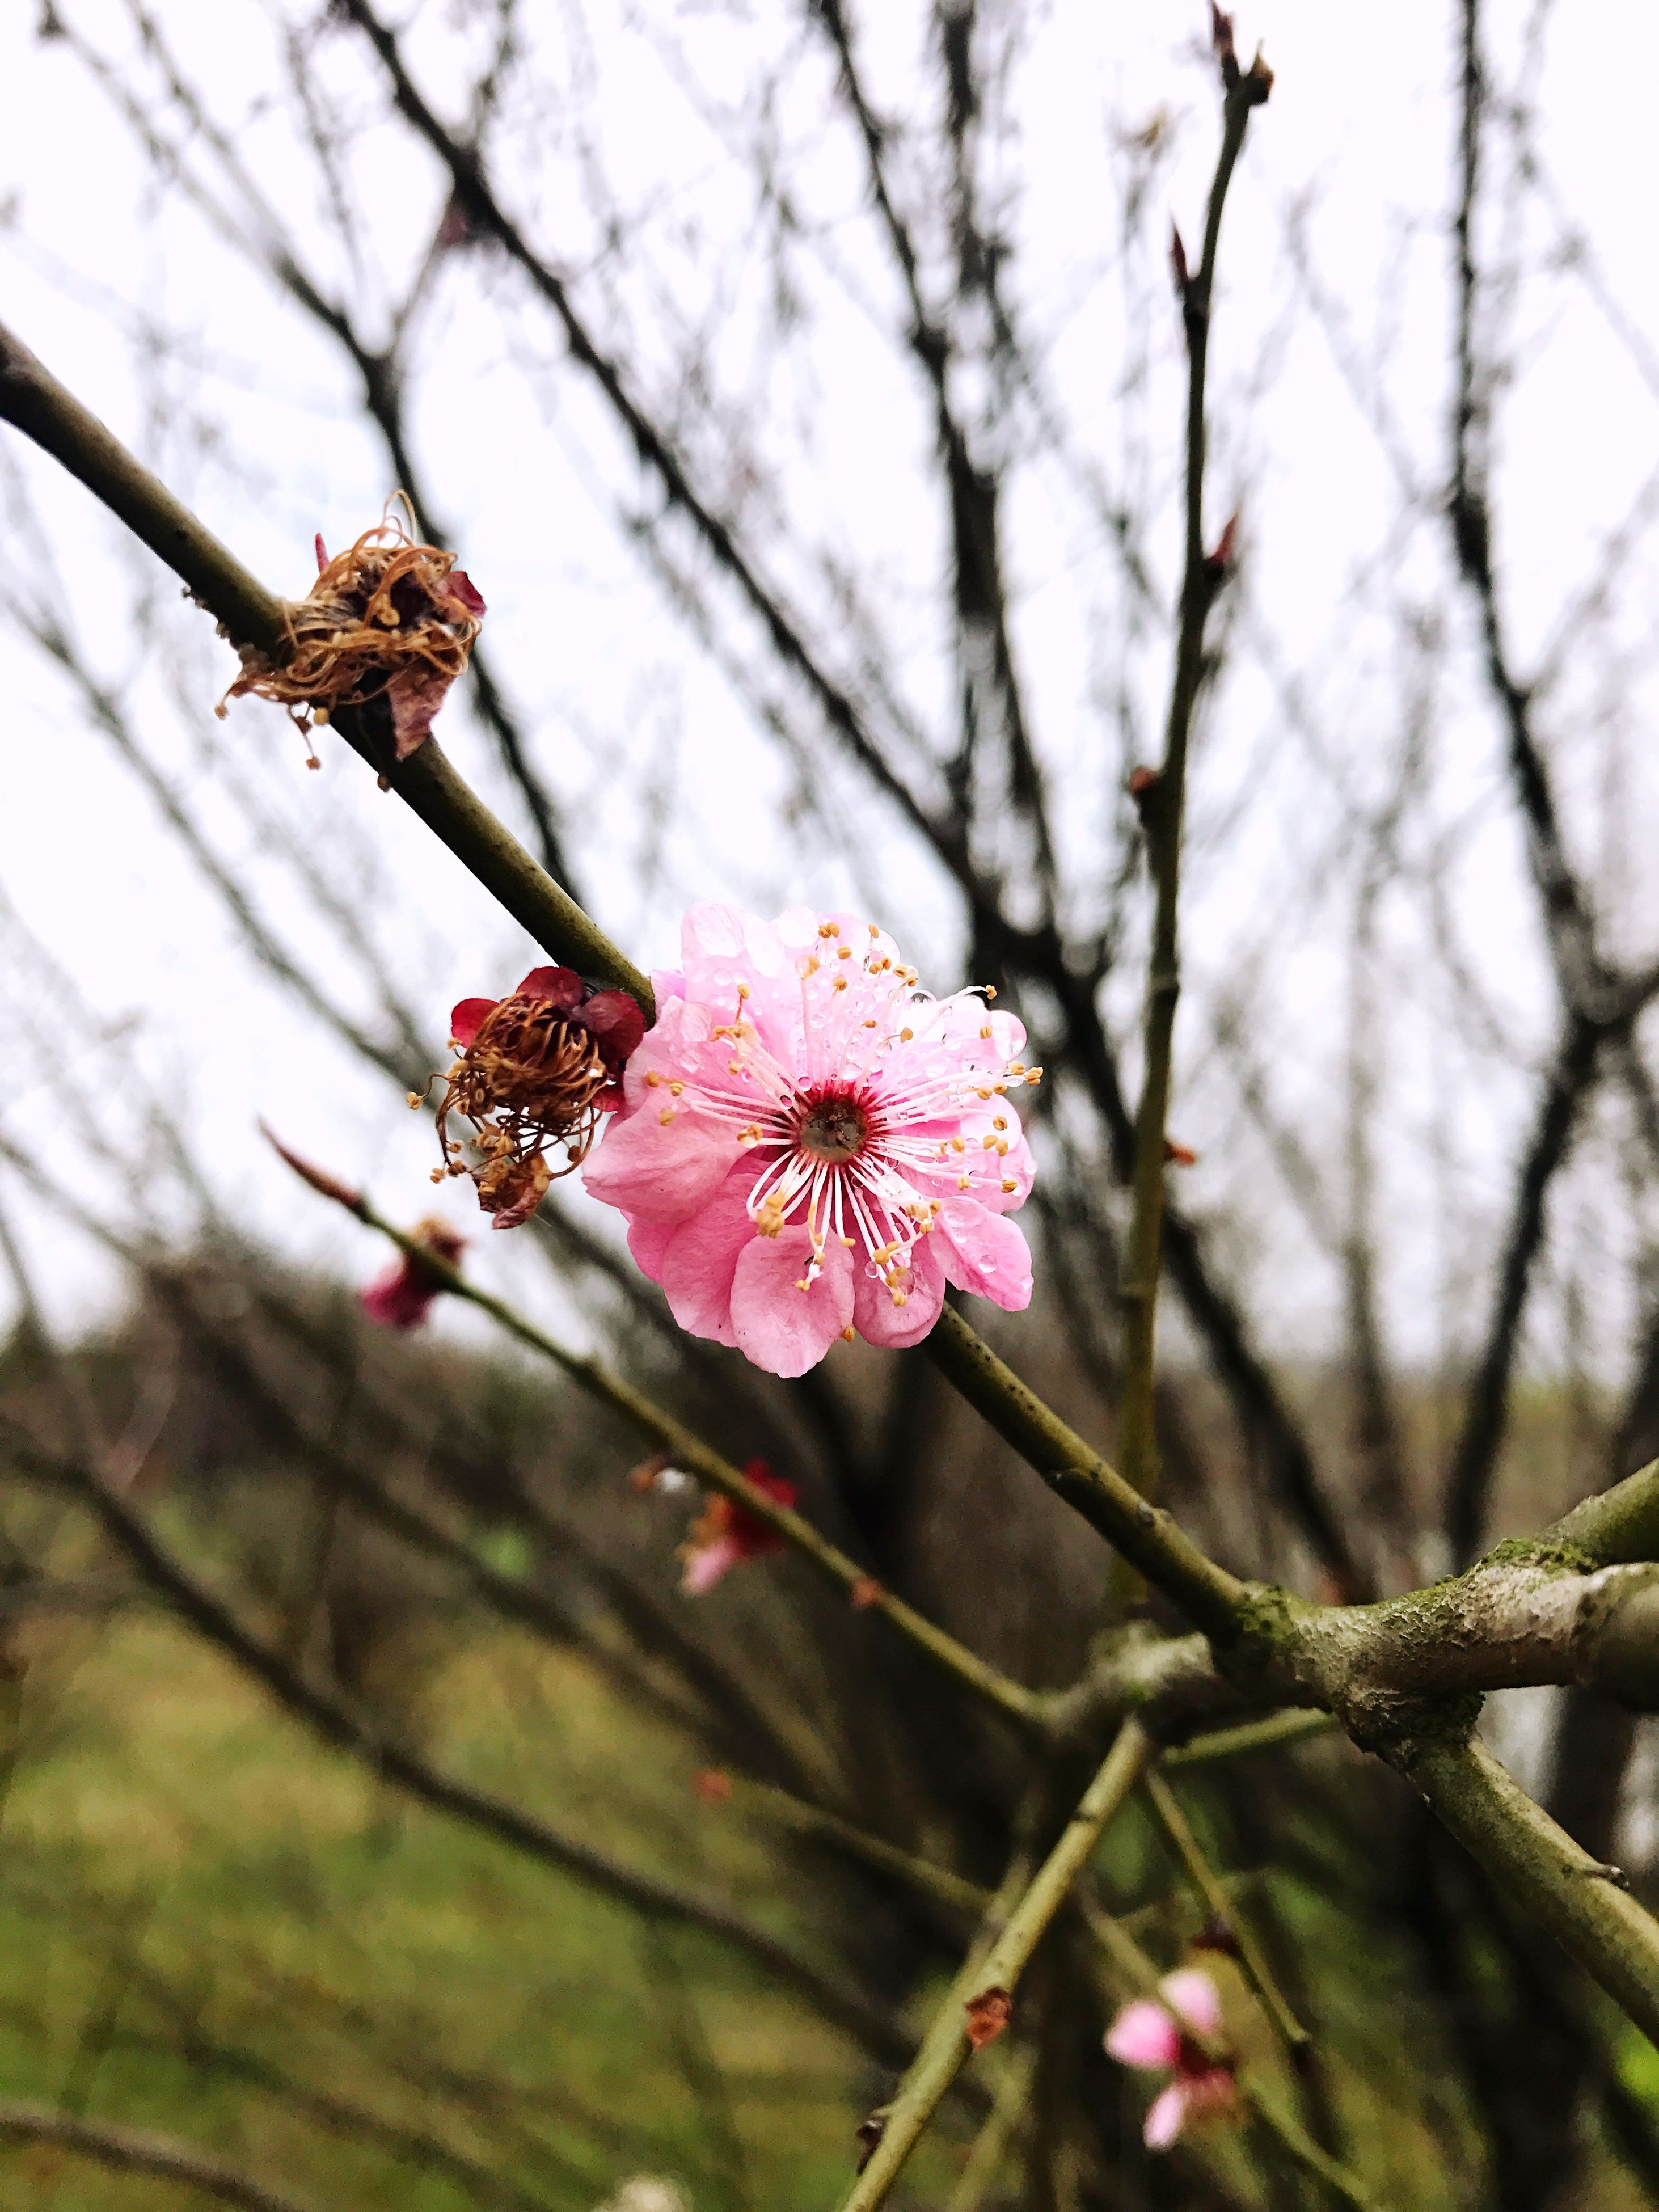 flower, pink color, nature, beauty in nature, flower head, fragility, growth, petal, freshness, branch, tree, blossom, close-up, springtime, no people, outdoors, low angle view, day, plum blossom, sky, rhododendron